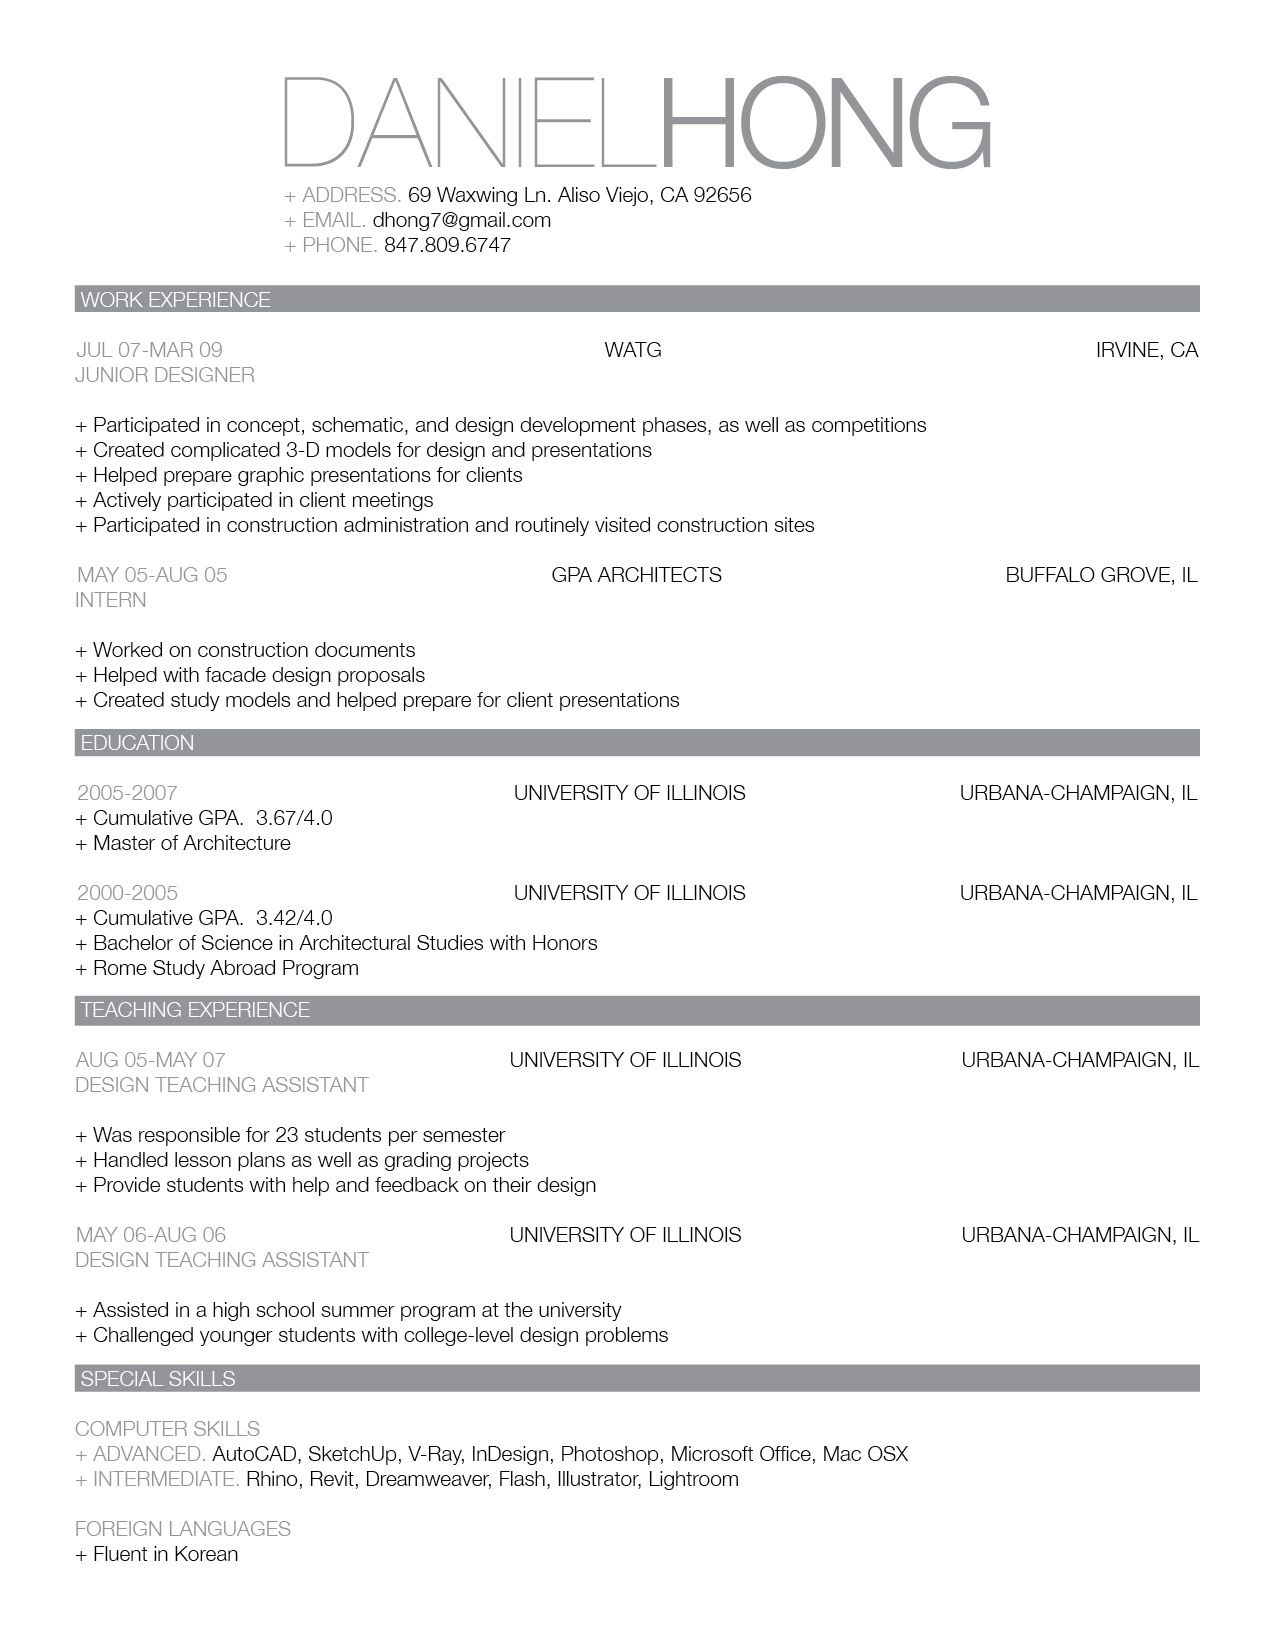 Good Updated CV And Work Sample To Fix My Resume Free